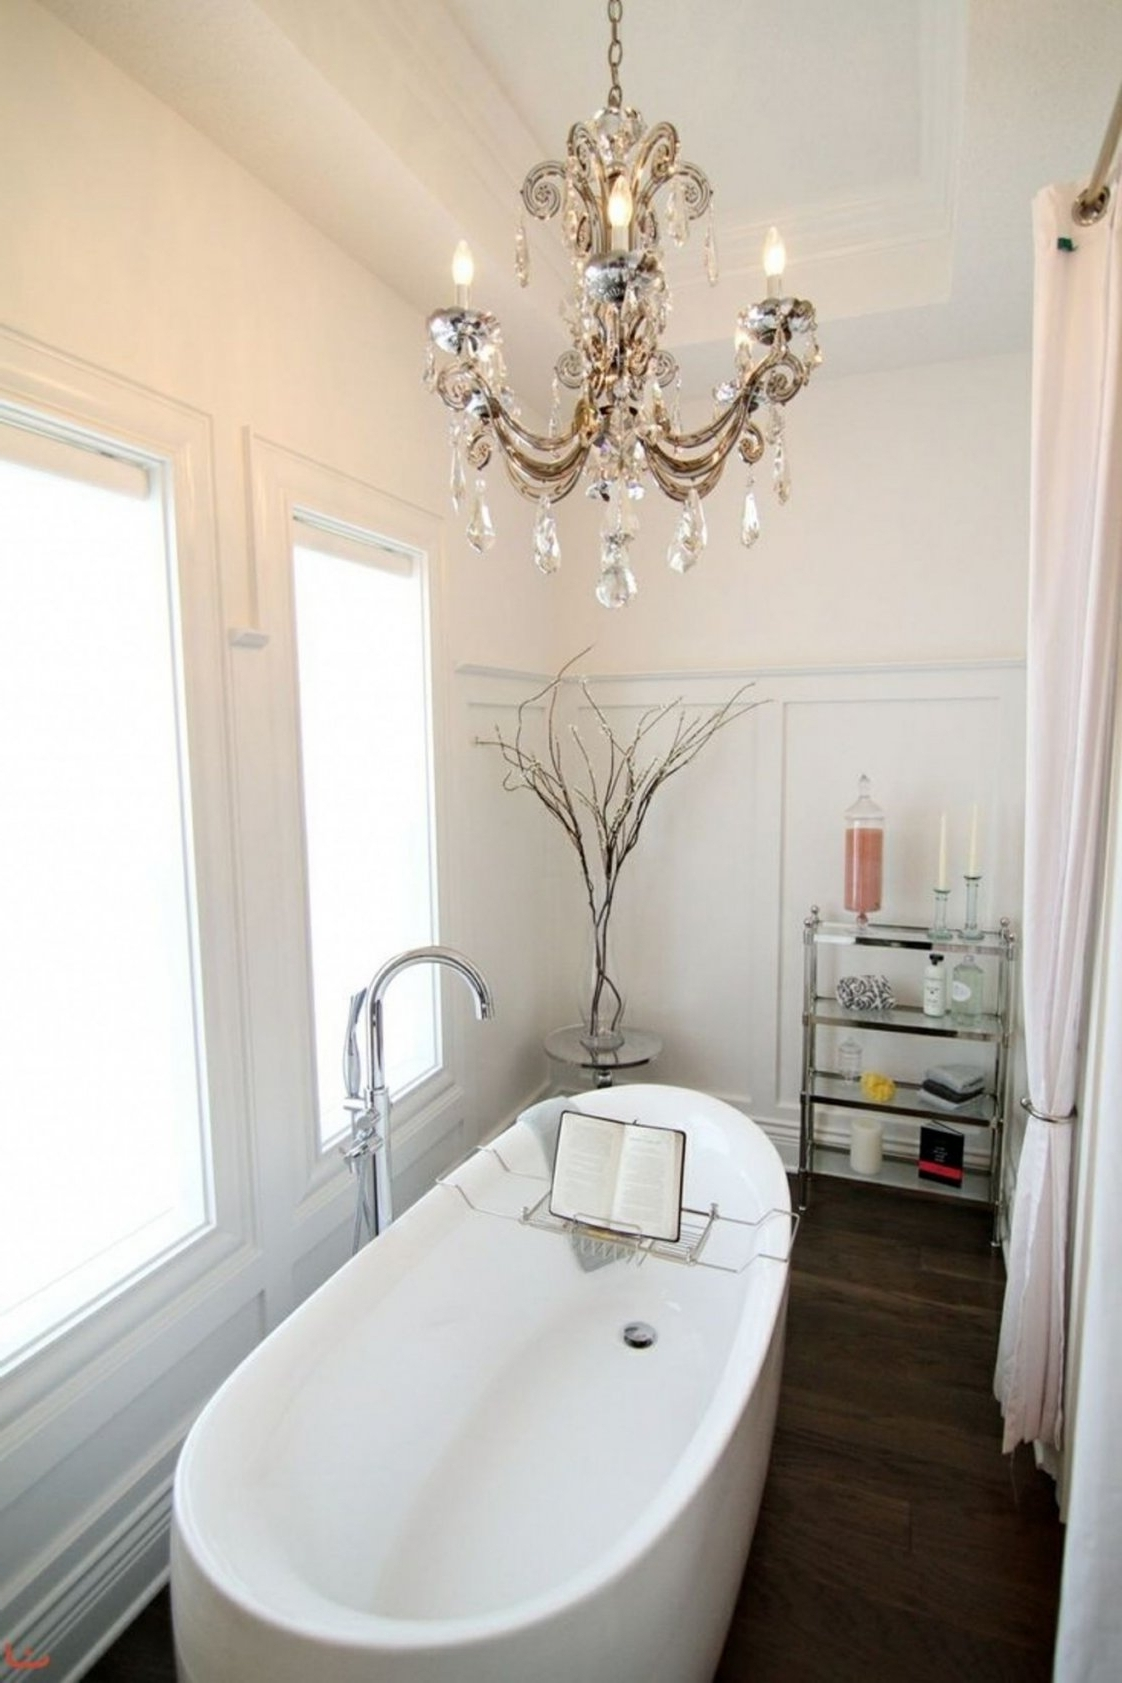 Recent Bathroom Lighting With Matching Chandeliers In Chandelier Bathroom Lighting – Aneilve (View 7 of 15)